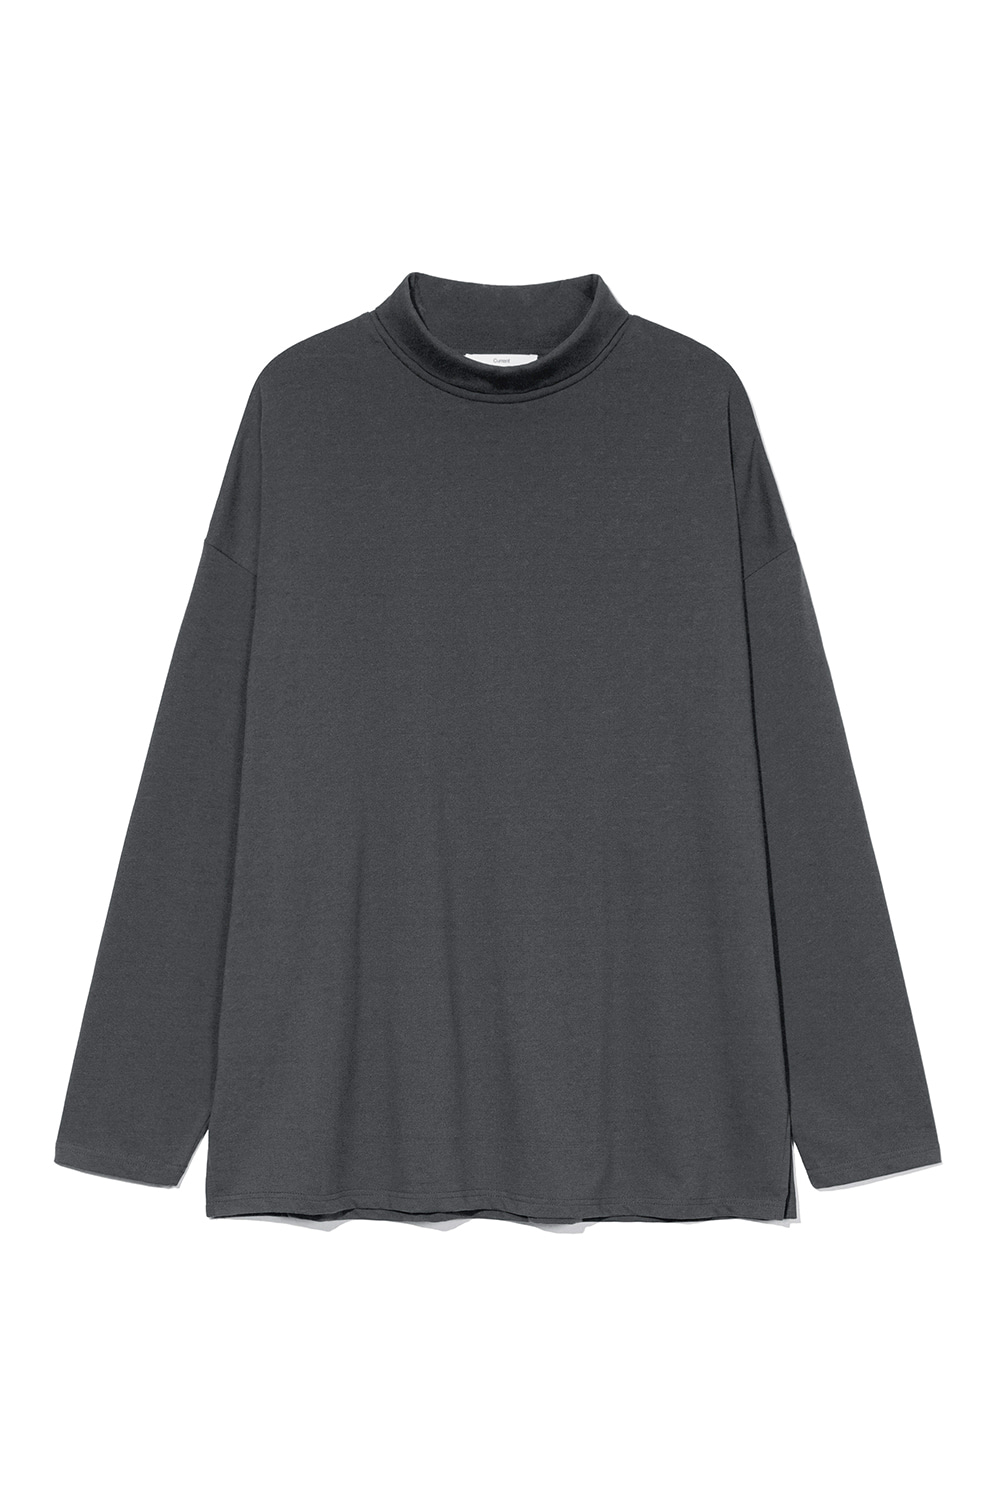 Turtle Neck Long Sleeves Men JA [Charcoal]